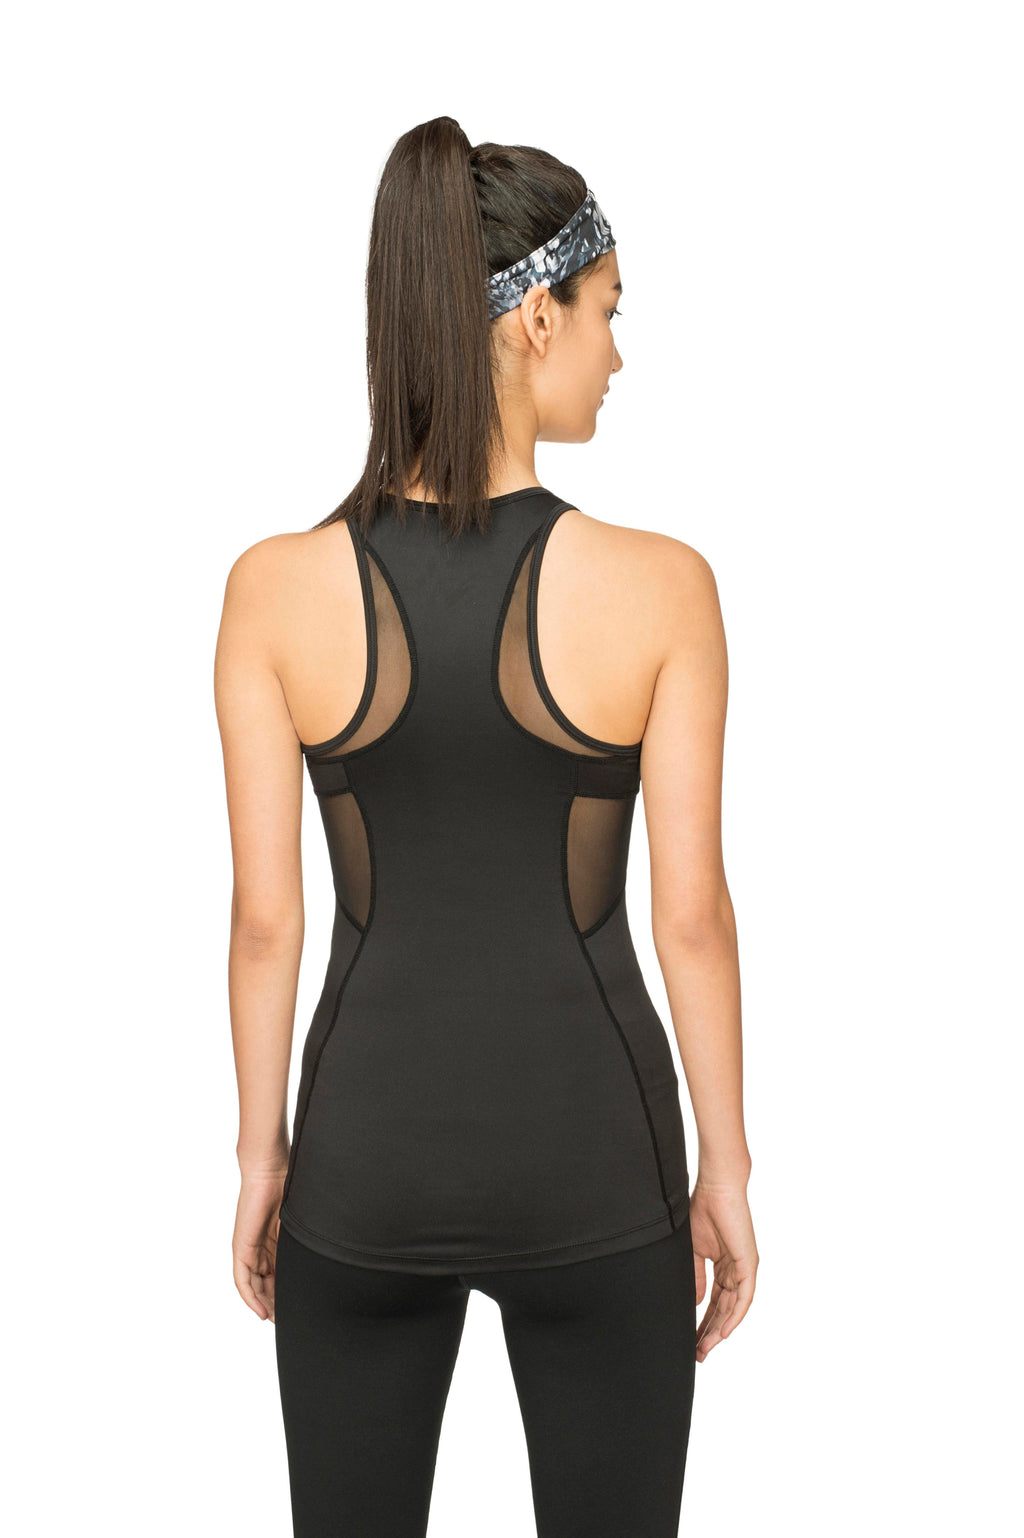 Fitkin Sport Fiited Gym Tank Top